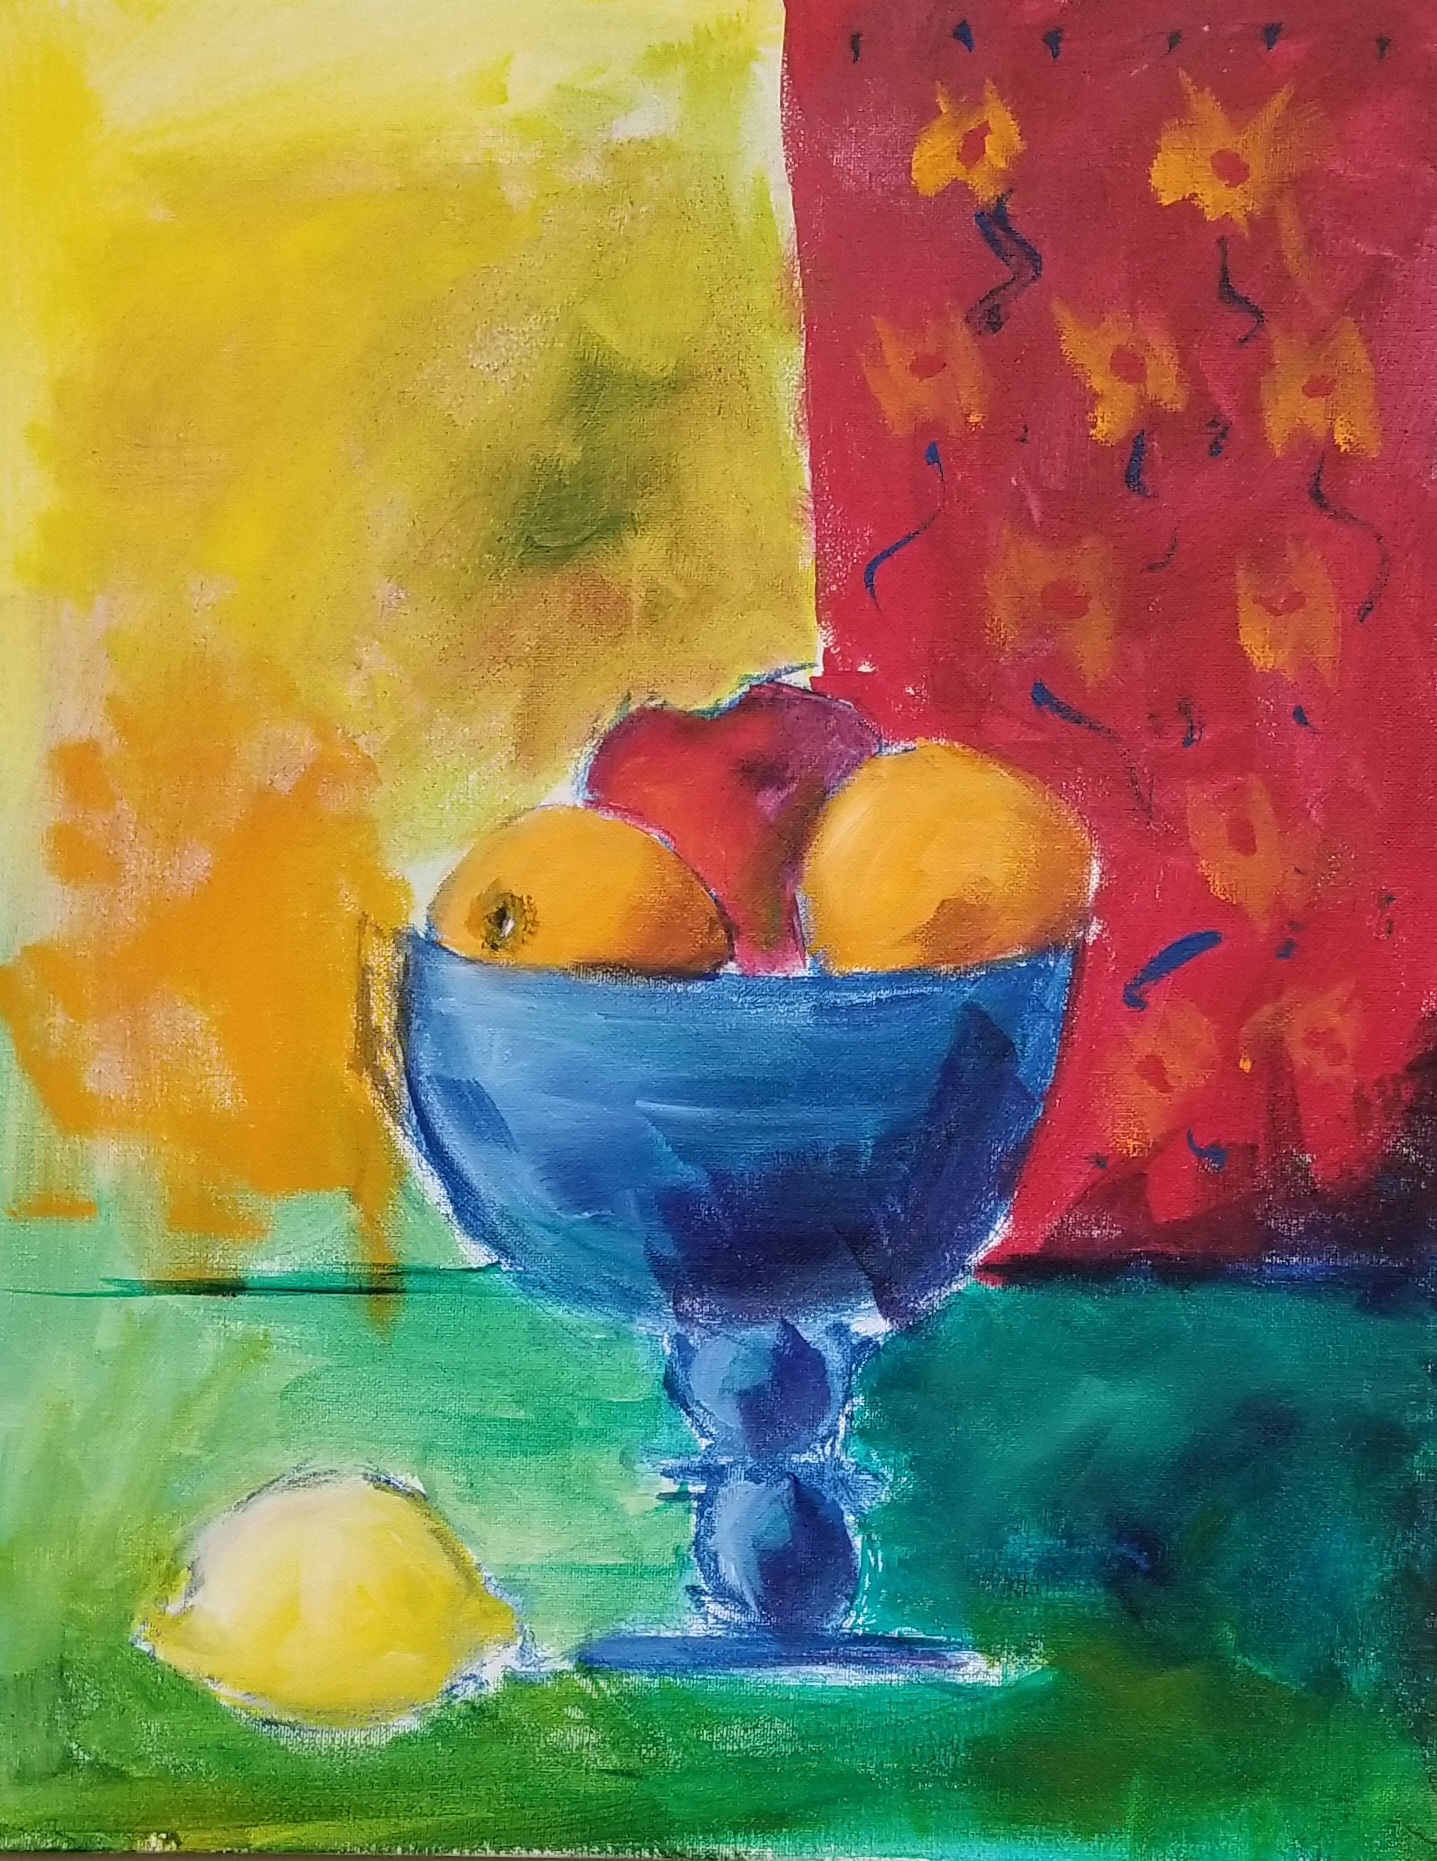 Blue footed fruit bowl with oranges and apple set in a brightly colored room